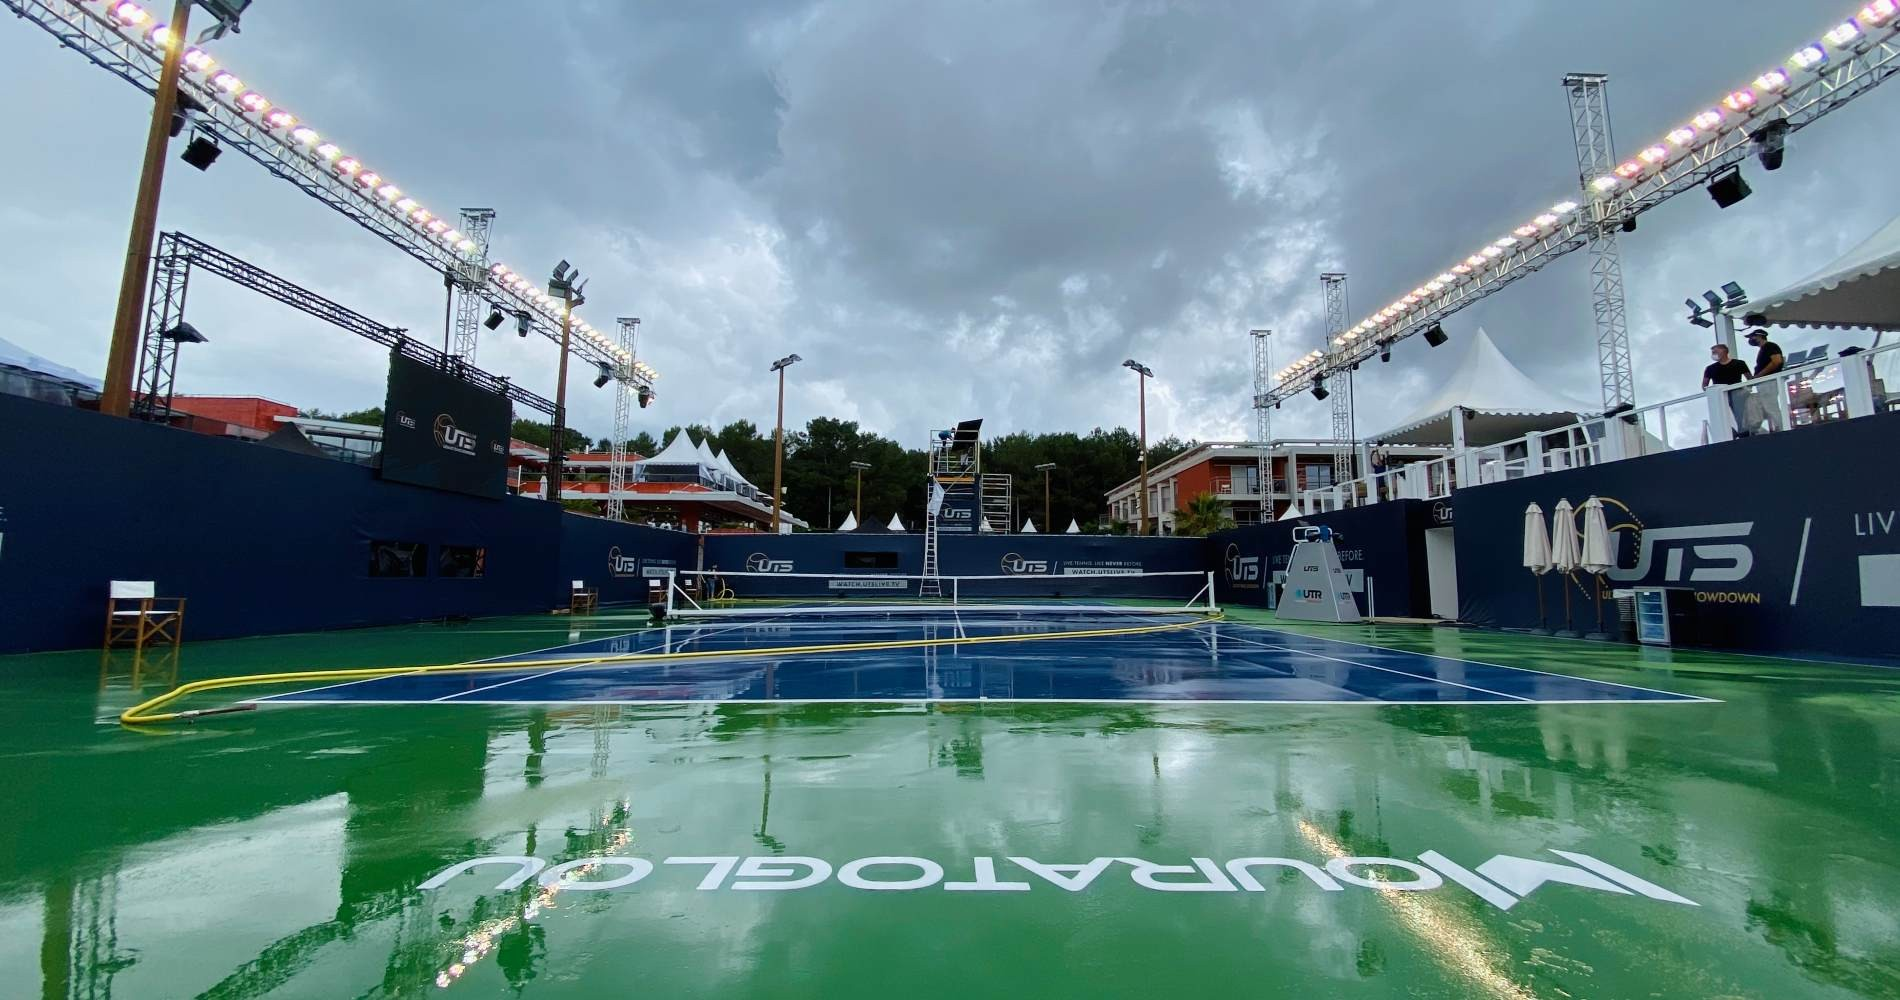 The centre court of the Mouratoglou Academy wet